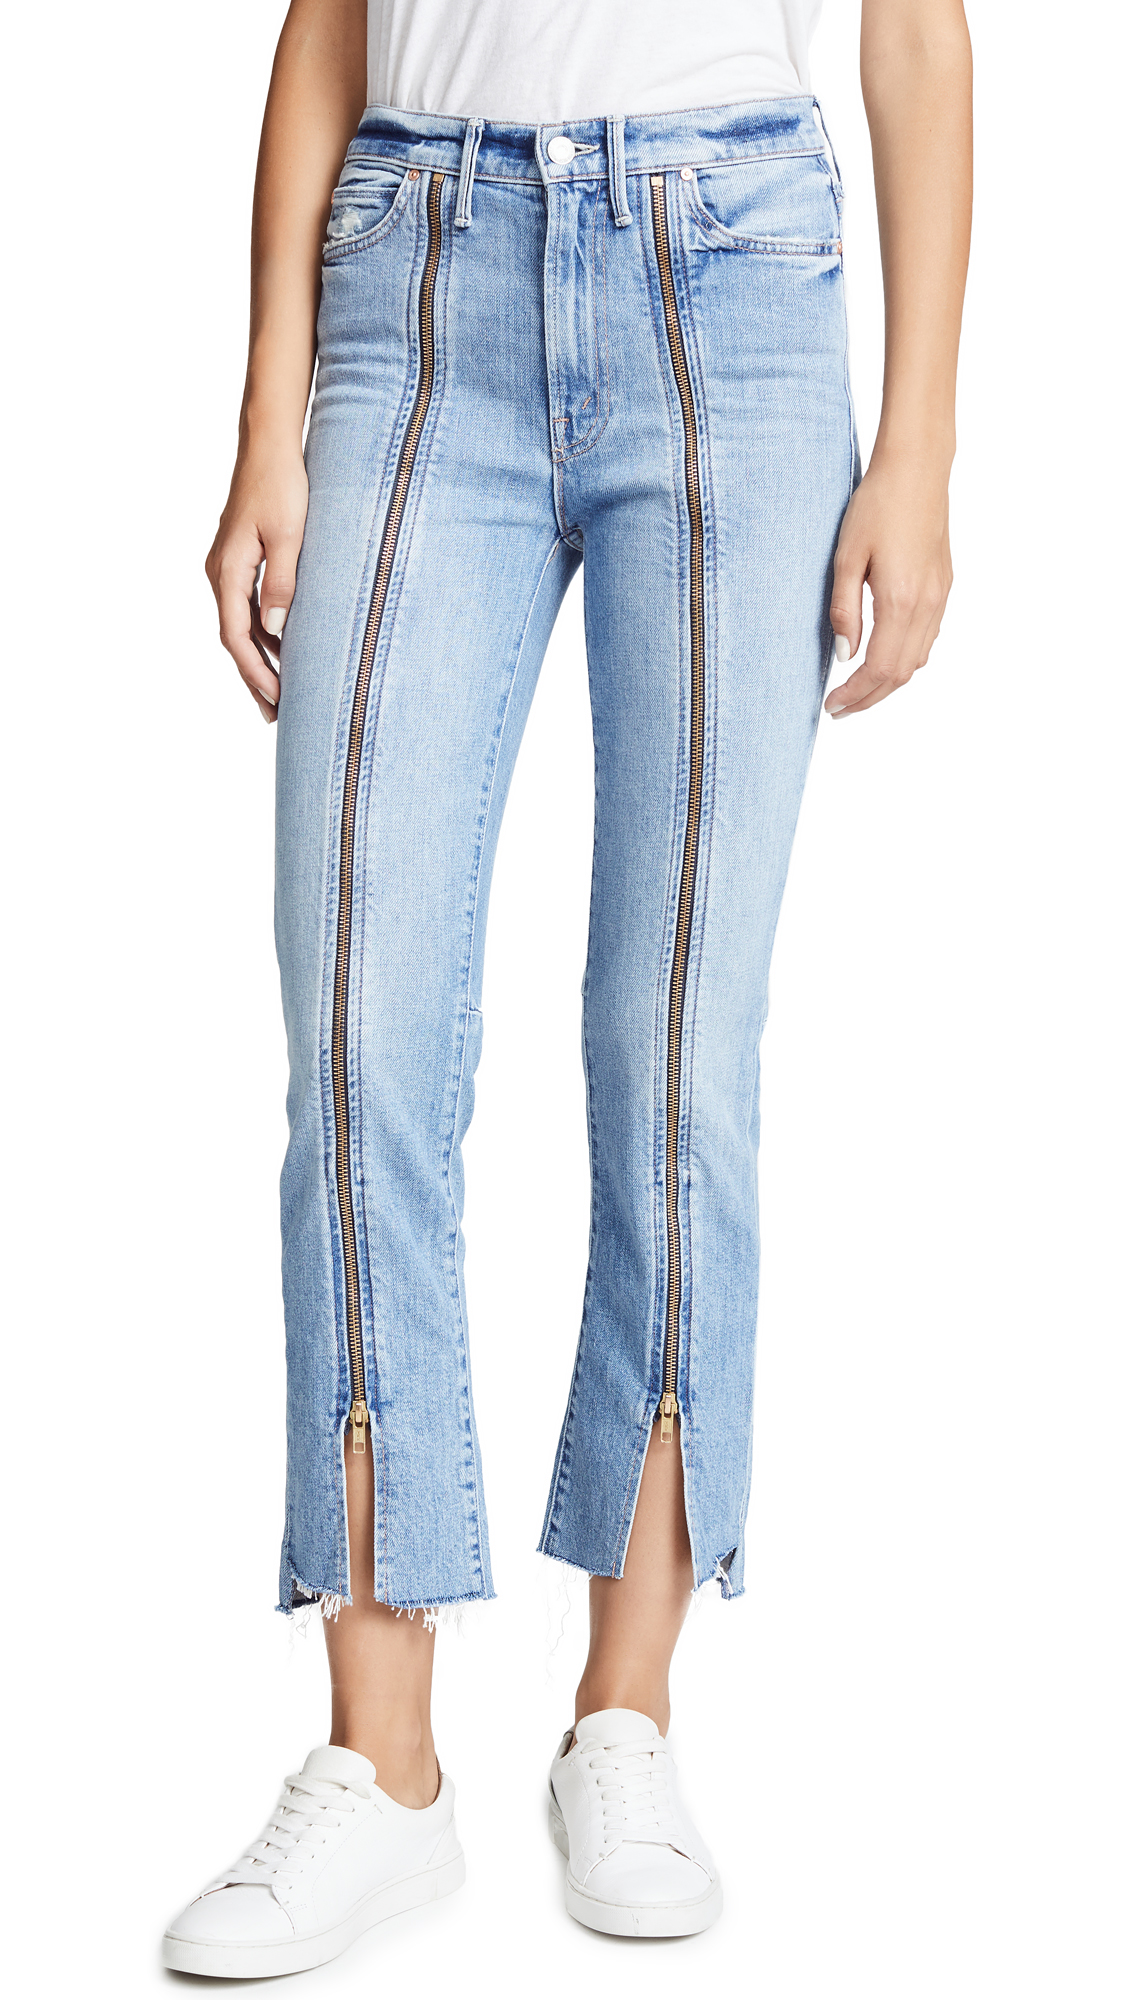 MOTHER High Waisted Rascal Misbeliever Jeans In Misbeliever